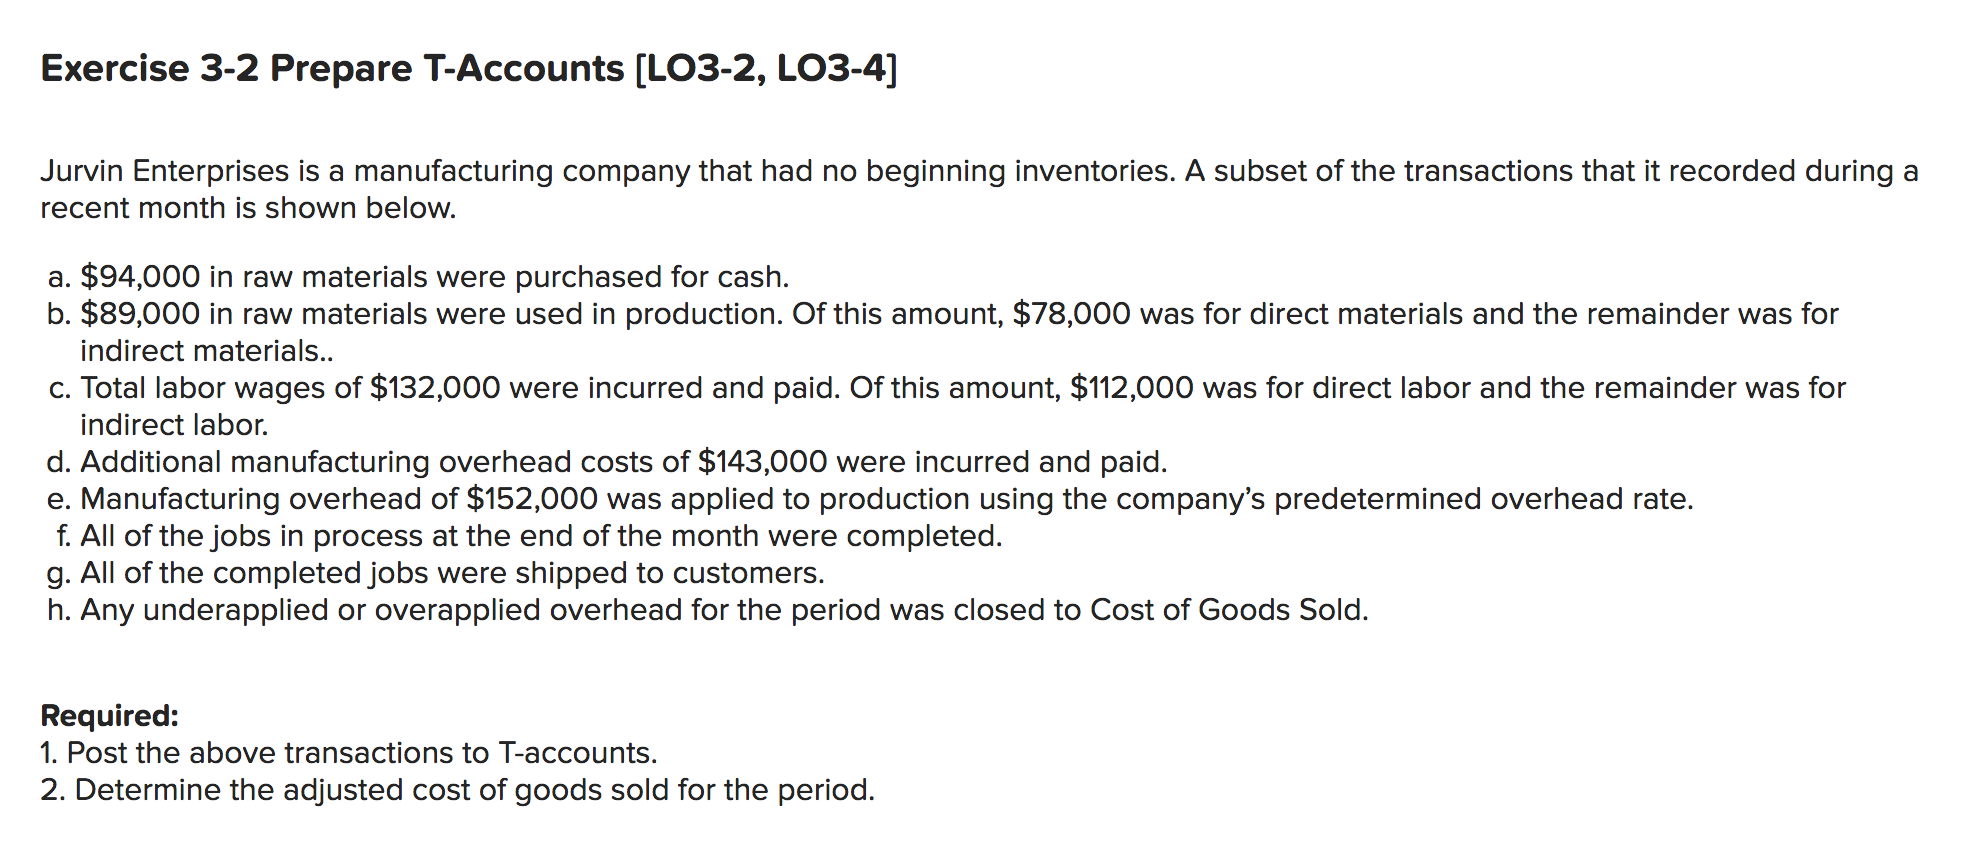 Exercise 3-2 Prepare T-Accounts [LO3-2, LO3-4] Jurvin Enterprises is a manufacturing company that had no beginning inventories. A subset of the transactions that it recorded during a recent month is shown below. a. $94,000 in raw materials were purchased for cash. b. $89,000 in raw materials were used in production. Of this amount, $78,000 was for direct materials and the remainder was for indirect materials.. c. Total labor wages of $132,000 were incurred and paid. Of this amount, $112,000 was for direct labor and the remainder was for indirect labor. d. Additional manufacturing overhead costs of $143,000 were incurred and paid. e. Manufacturing overhead of $152,000 was applied to production using the company's predetermined overhead rate. f. All of the jobs in process at the end of the month were completed. g. All of the completed jobs were shipped to customers. h. Any underapplied or overapplied overhead for the period was closed to Cost of Goods Sold. Required: 1. Post the above transactions to T-accounts. 2. Determine the adjusted cost of goods sold for the period.